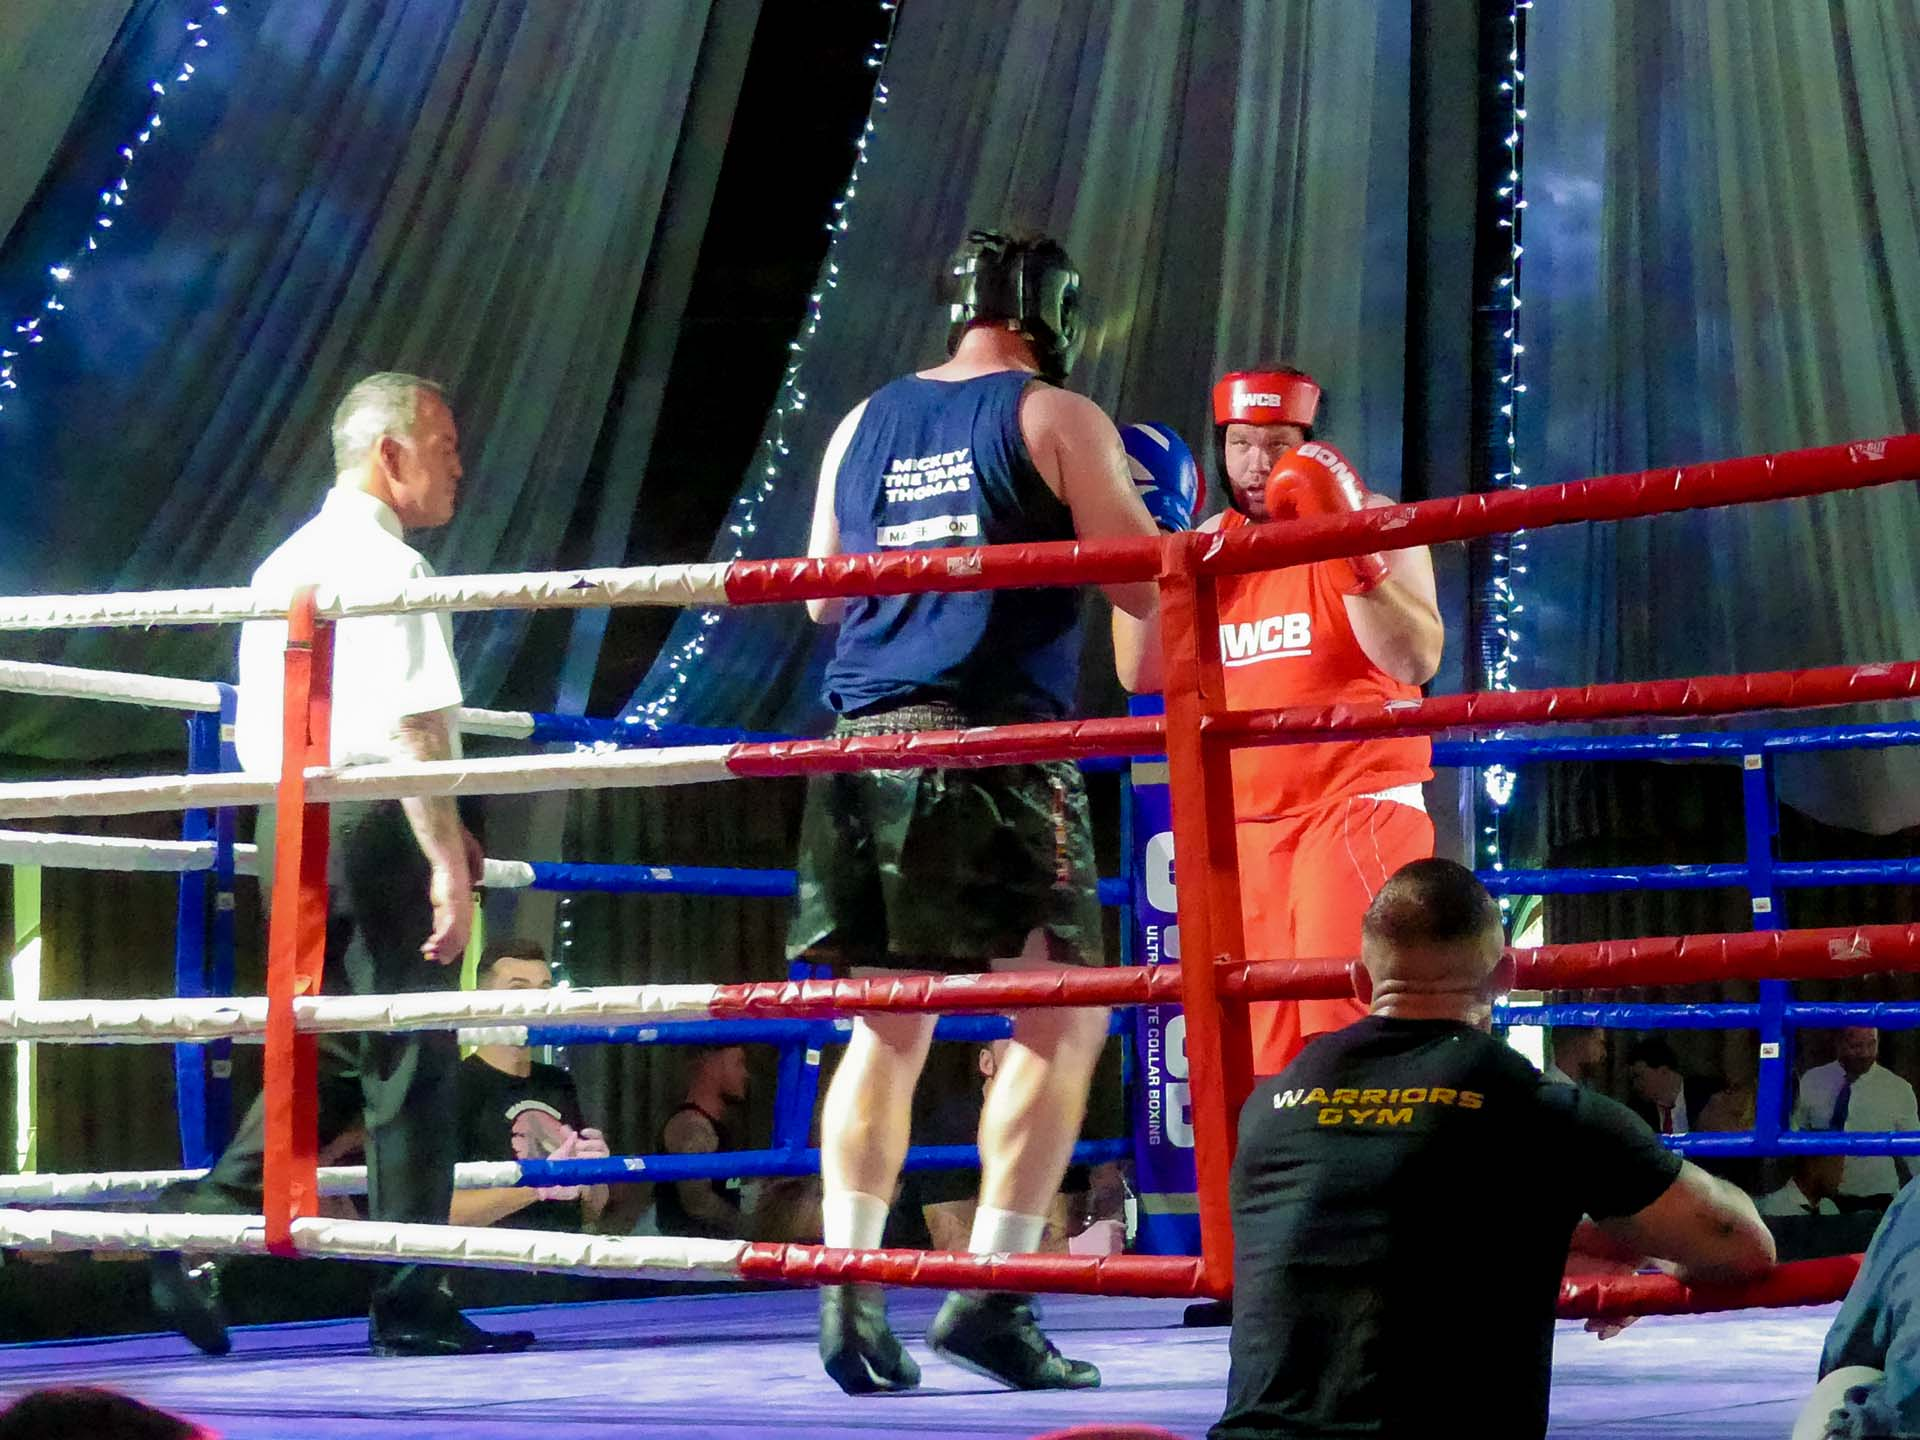 granite worktop fitters boxing-cancer-research-copthorne-hotel-182127-a